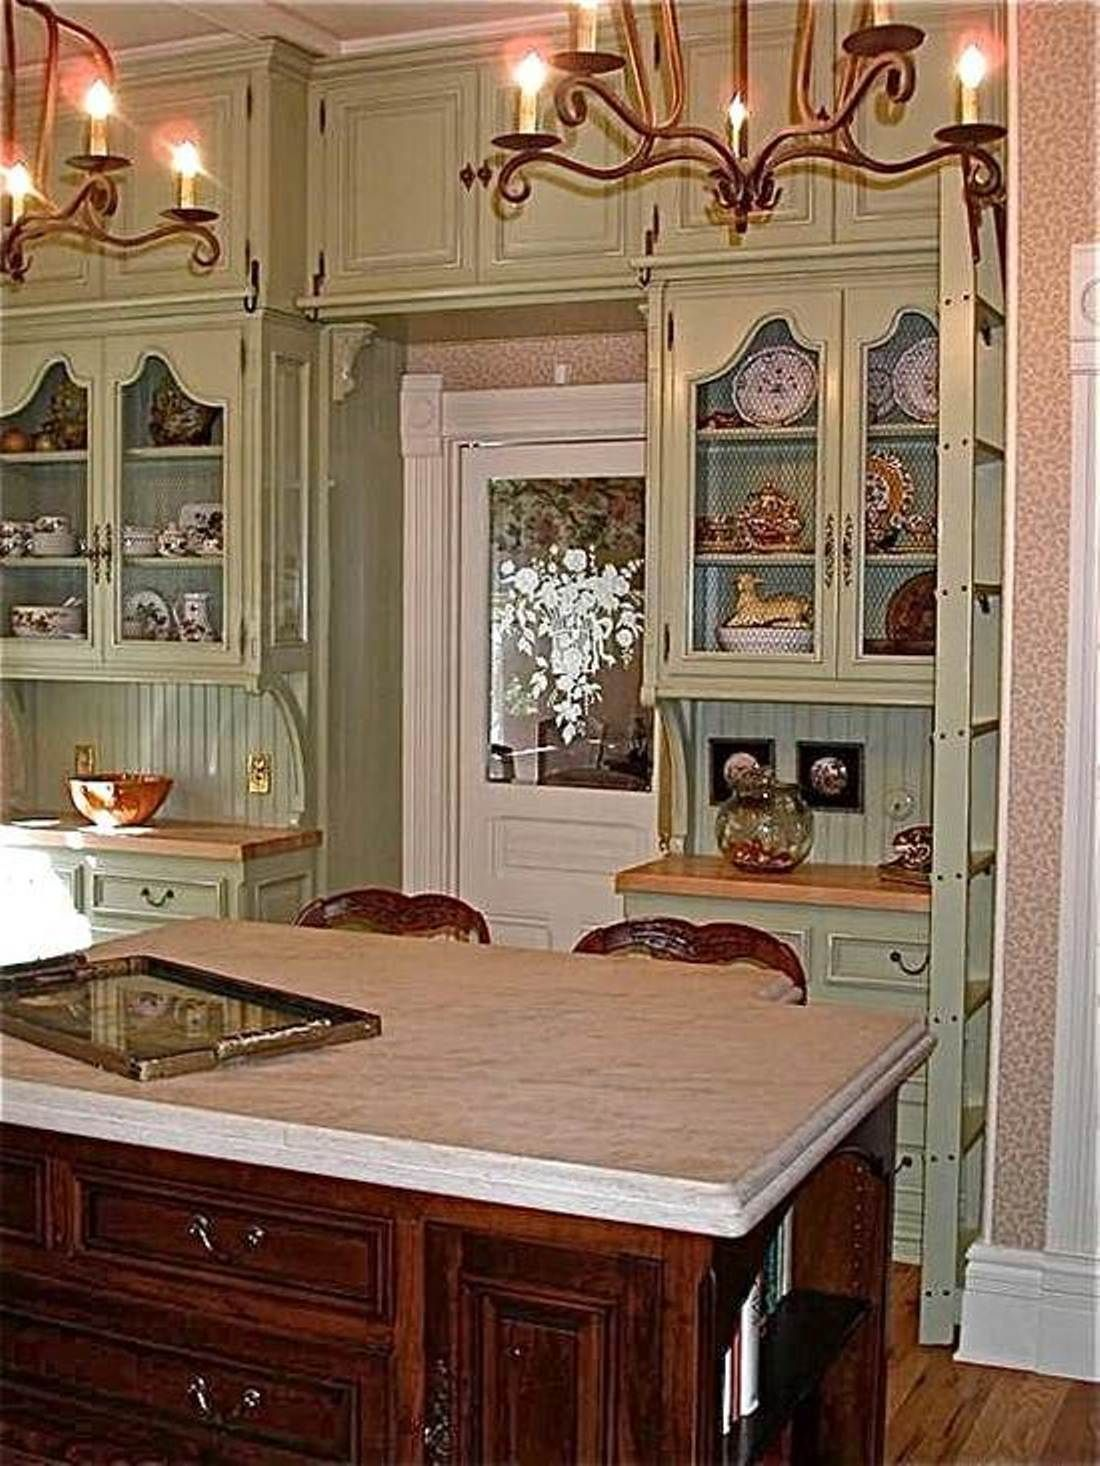 Nice victorian style kitchen my 1920 39 s home pinterest for Edwardian kitchen